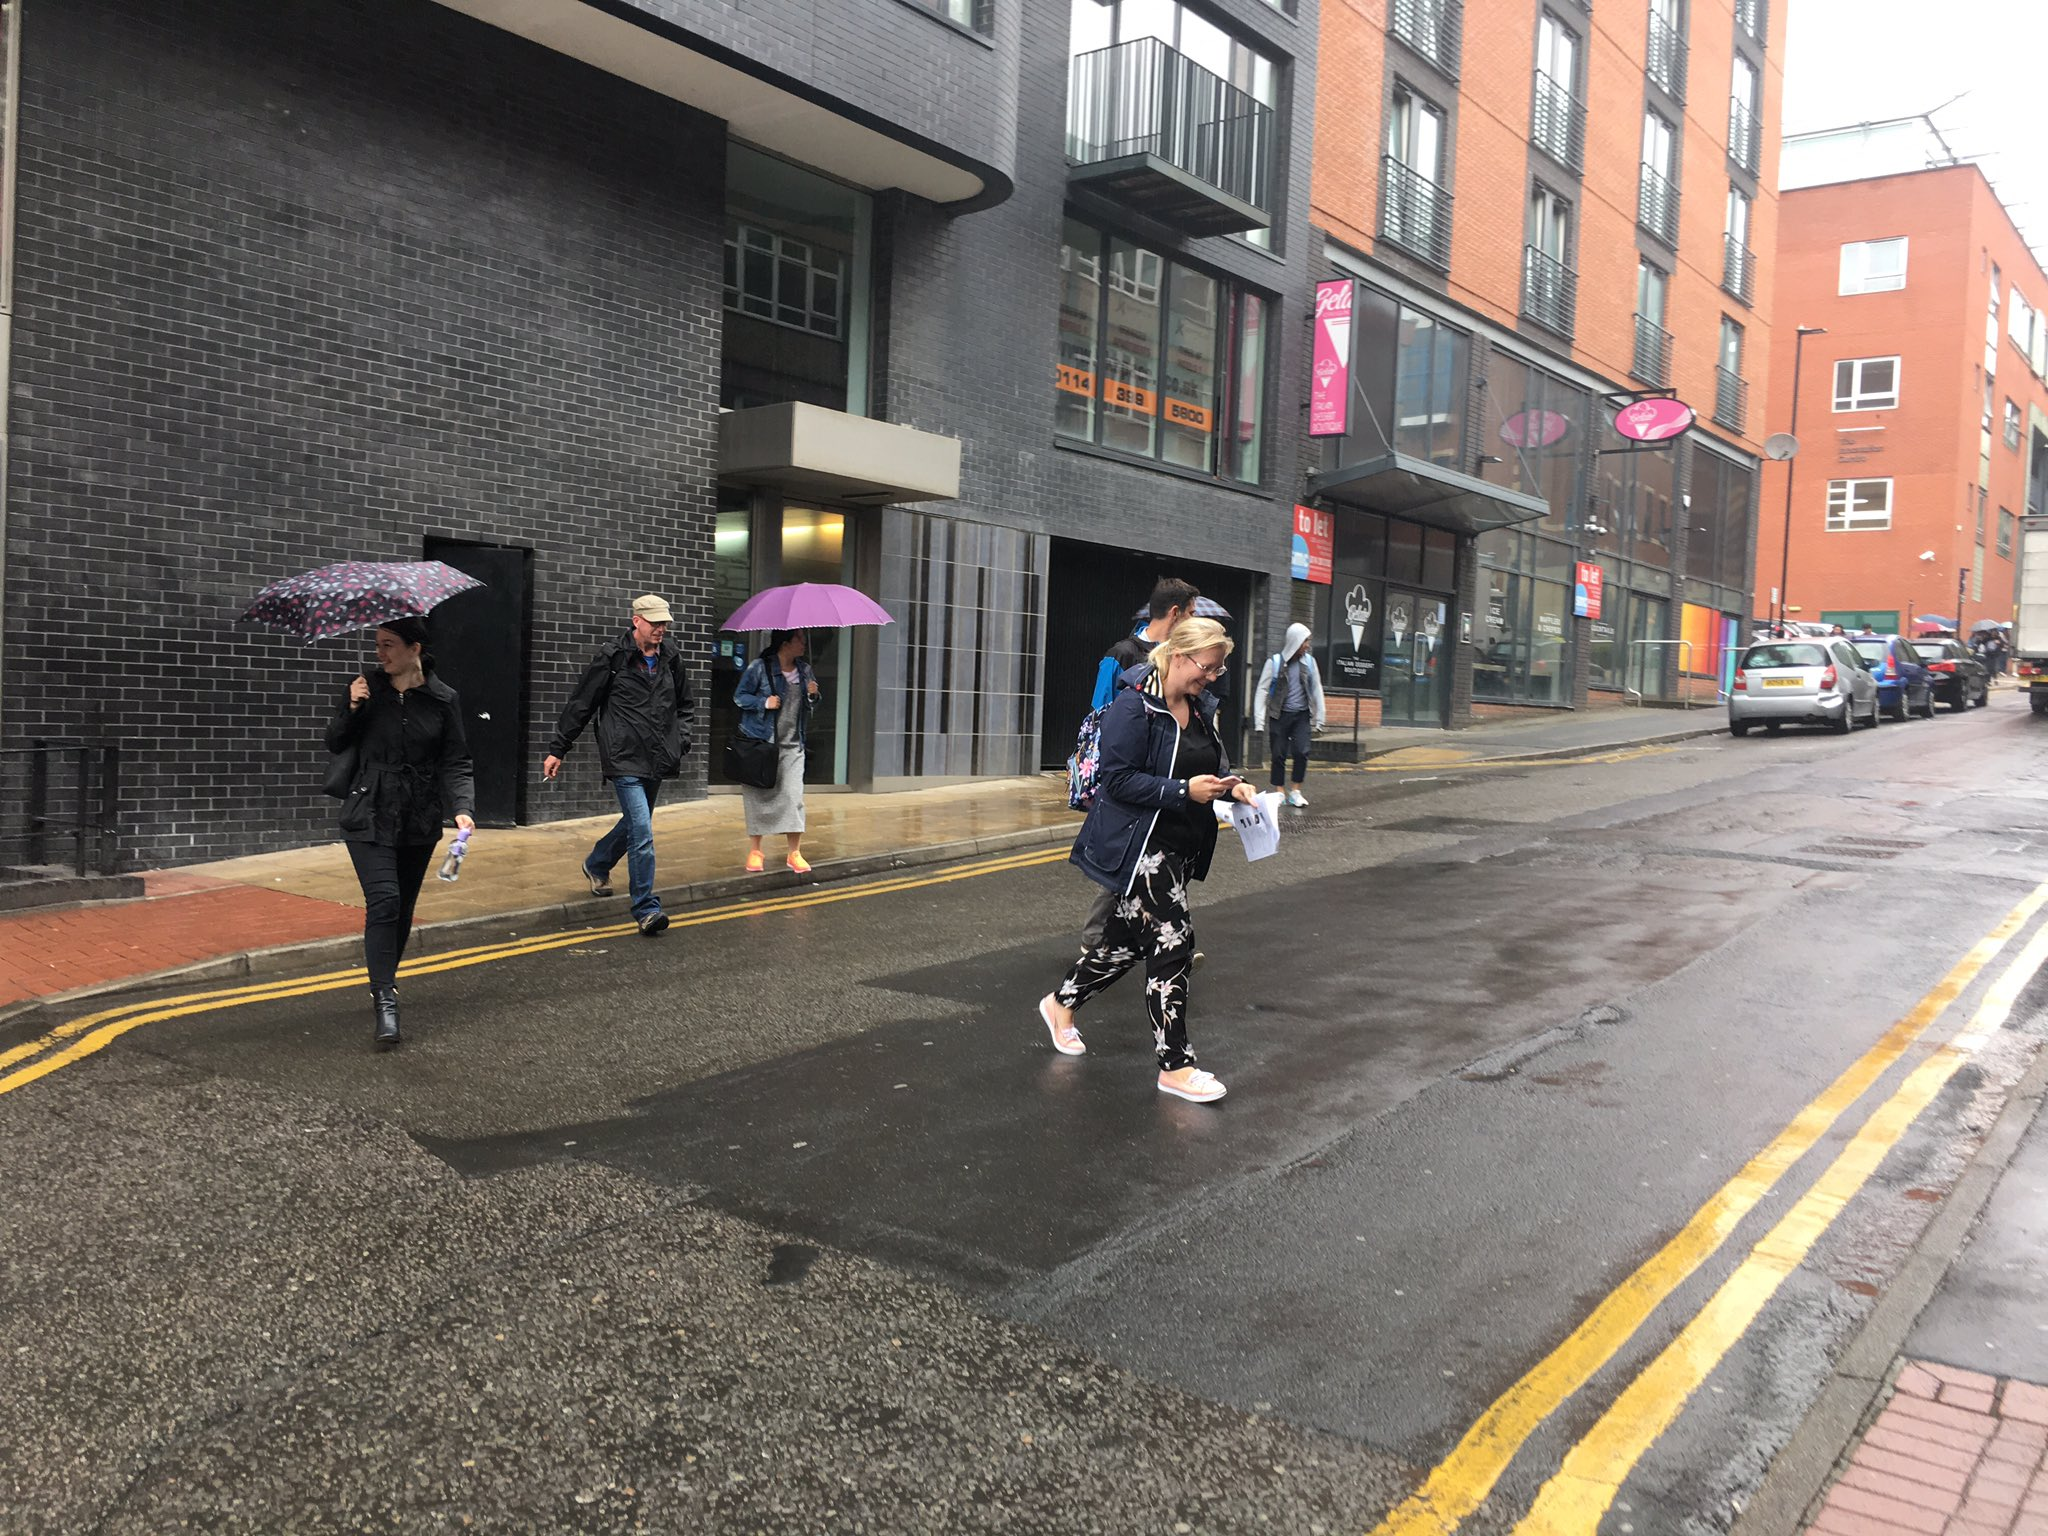 A1 we're off in the rain #TwalkBoundaries https://t.co/izKHGRX5kk